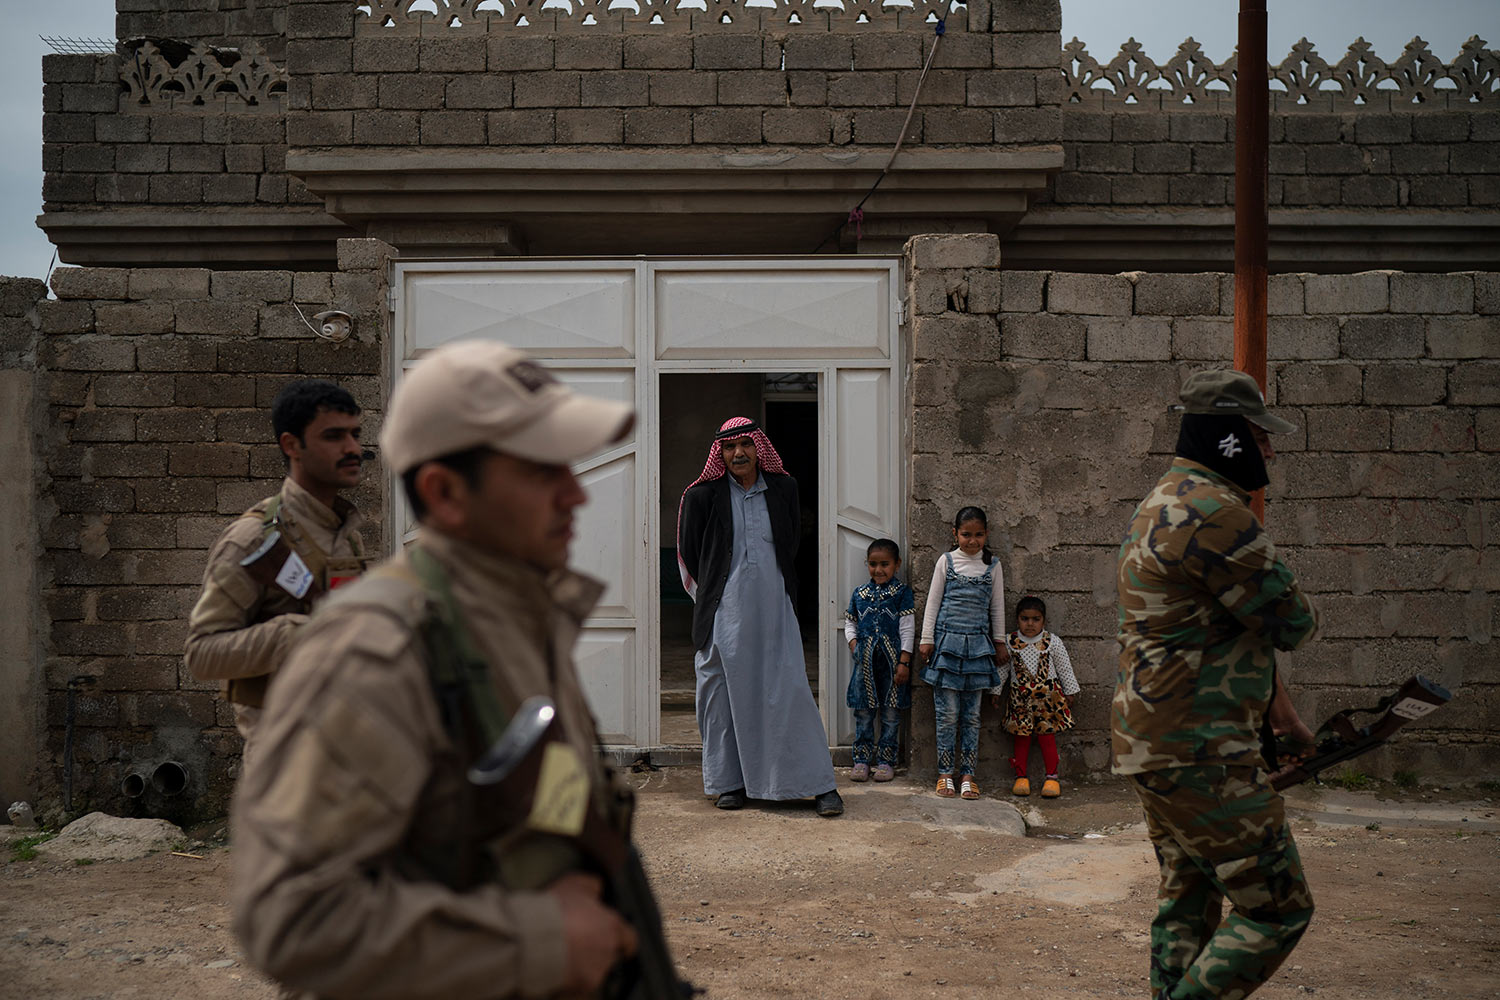 In this April 5, 2019 photo, residents watch as local militia and Iraqi army soldiers walk past their home during a raid in Badoush, Iraq. (AP Photo/Felipe Dana)